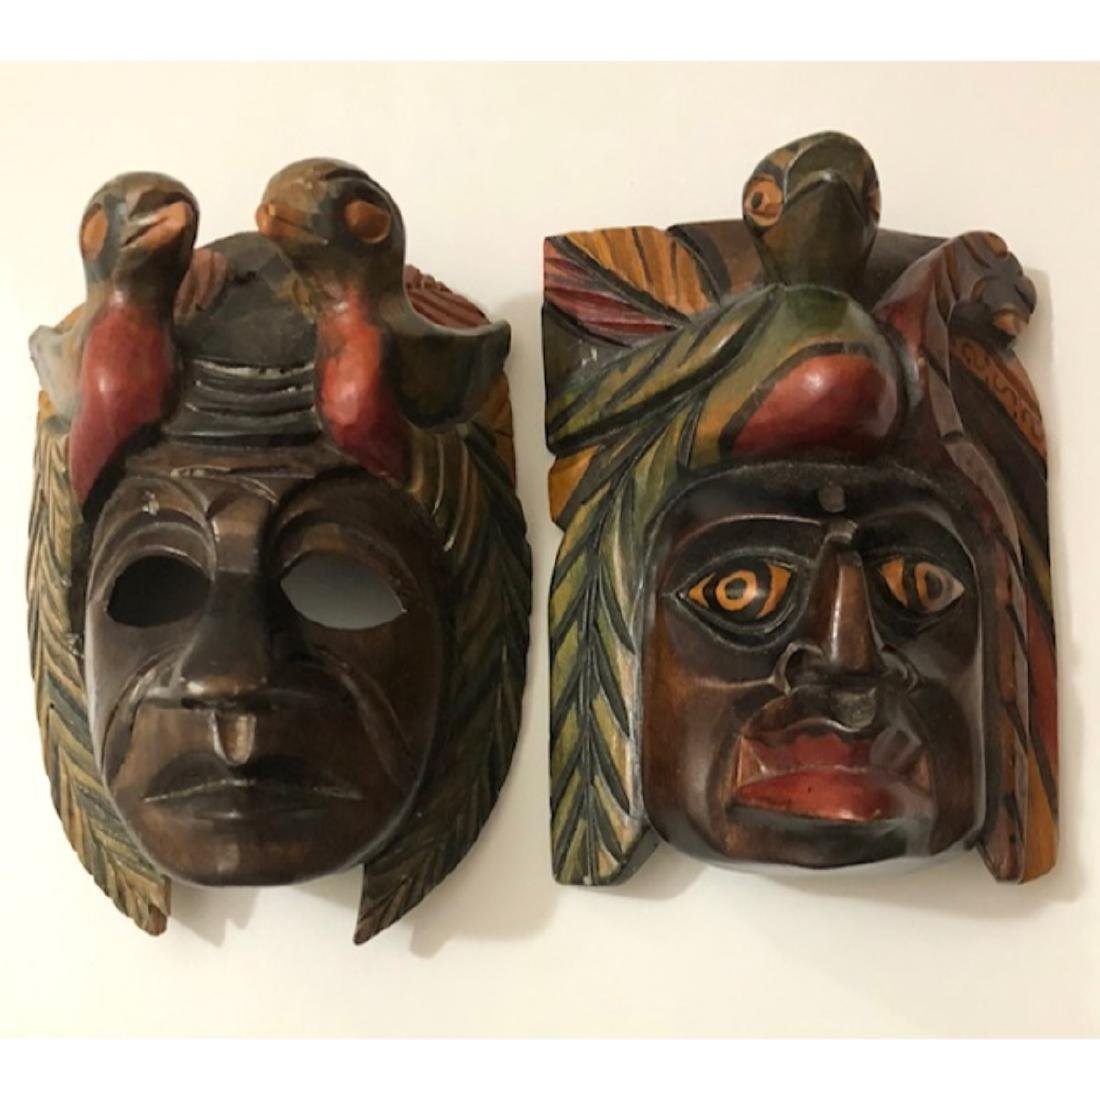 Lot of 2 Hand Carved & Painted Solid Wood Tribal Masks